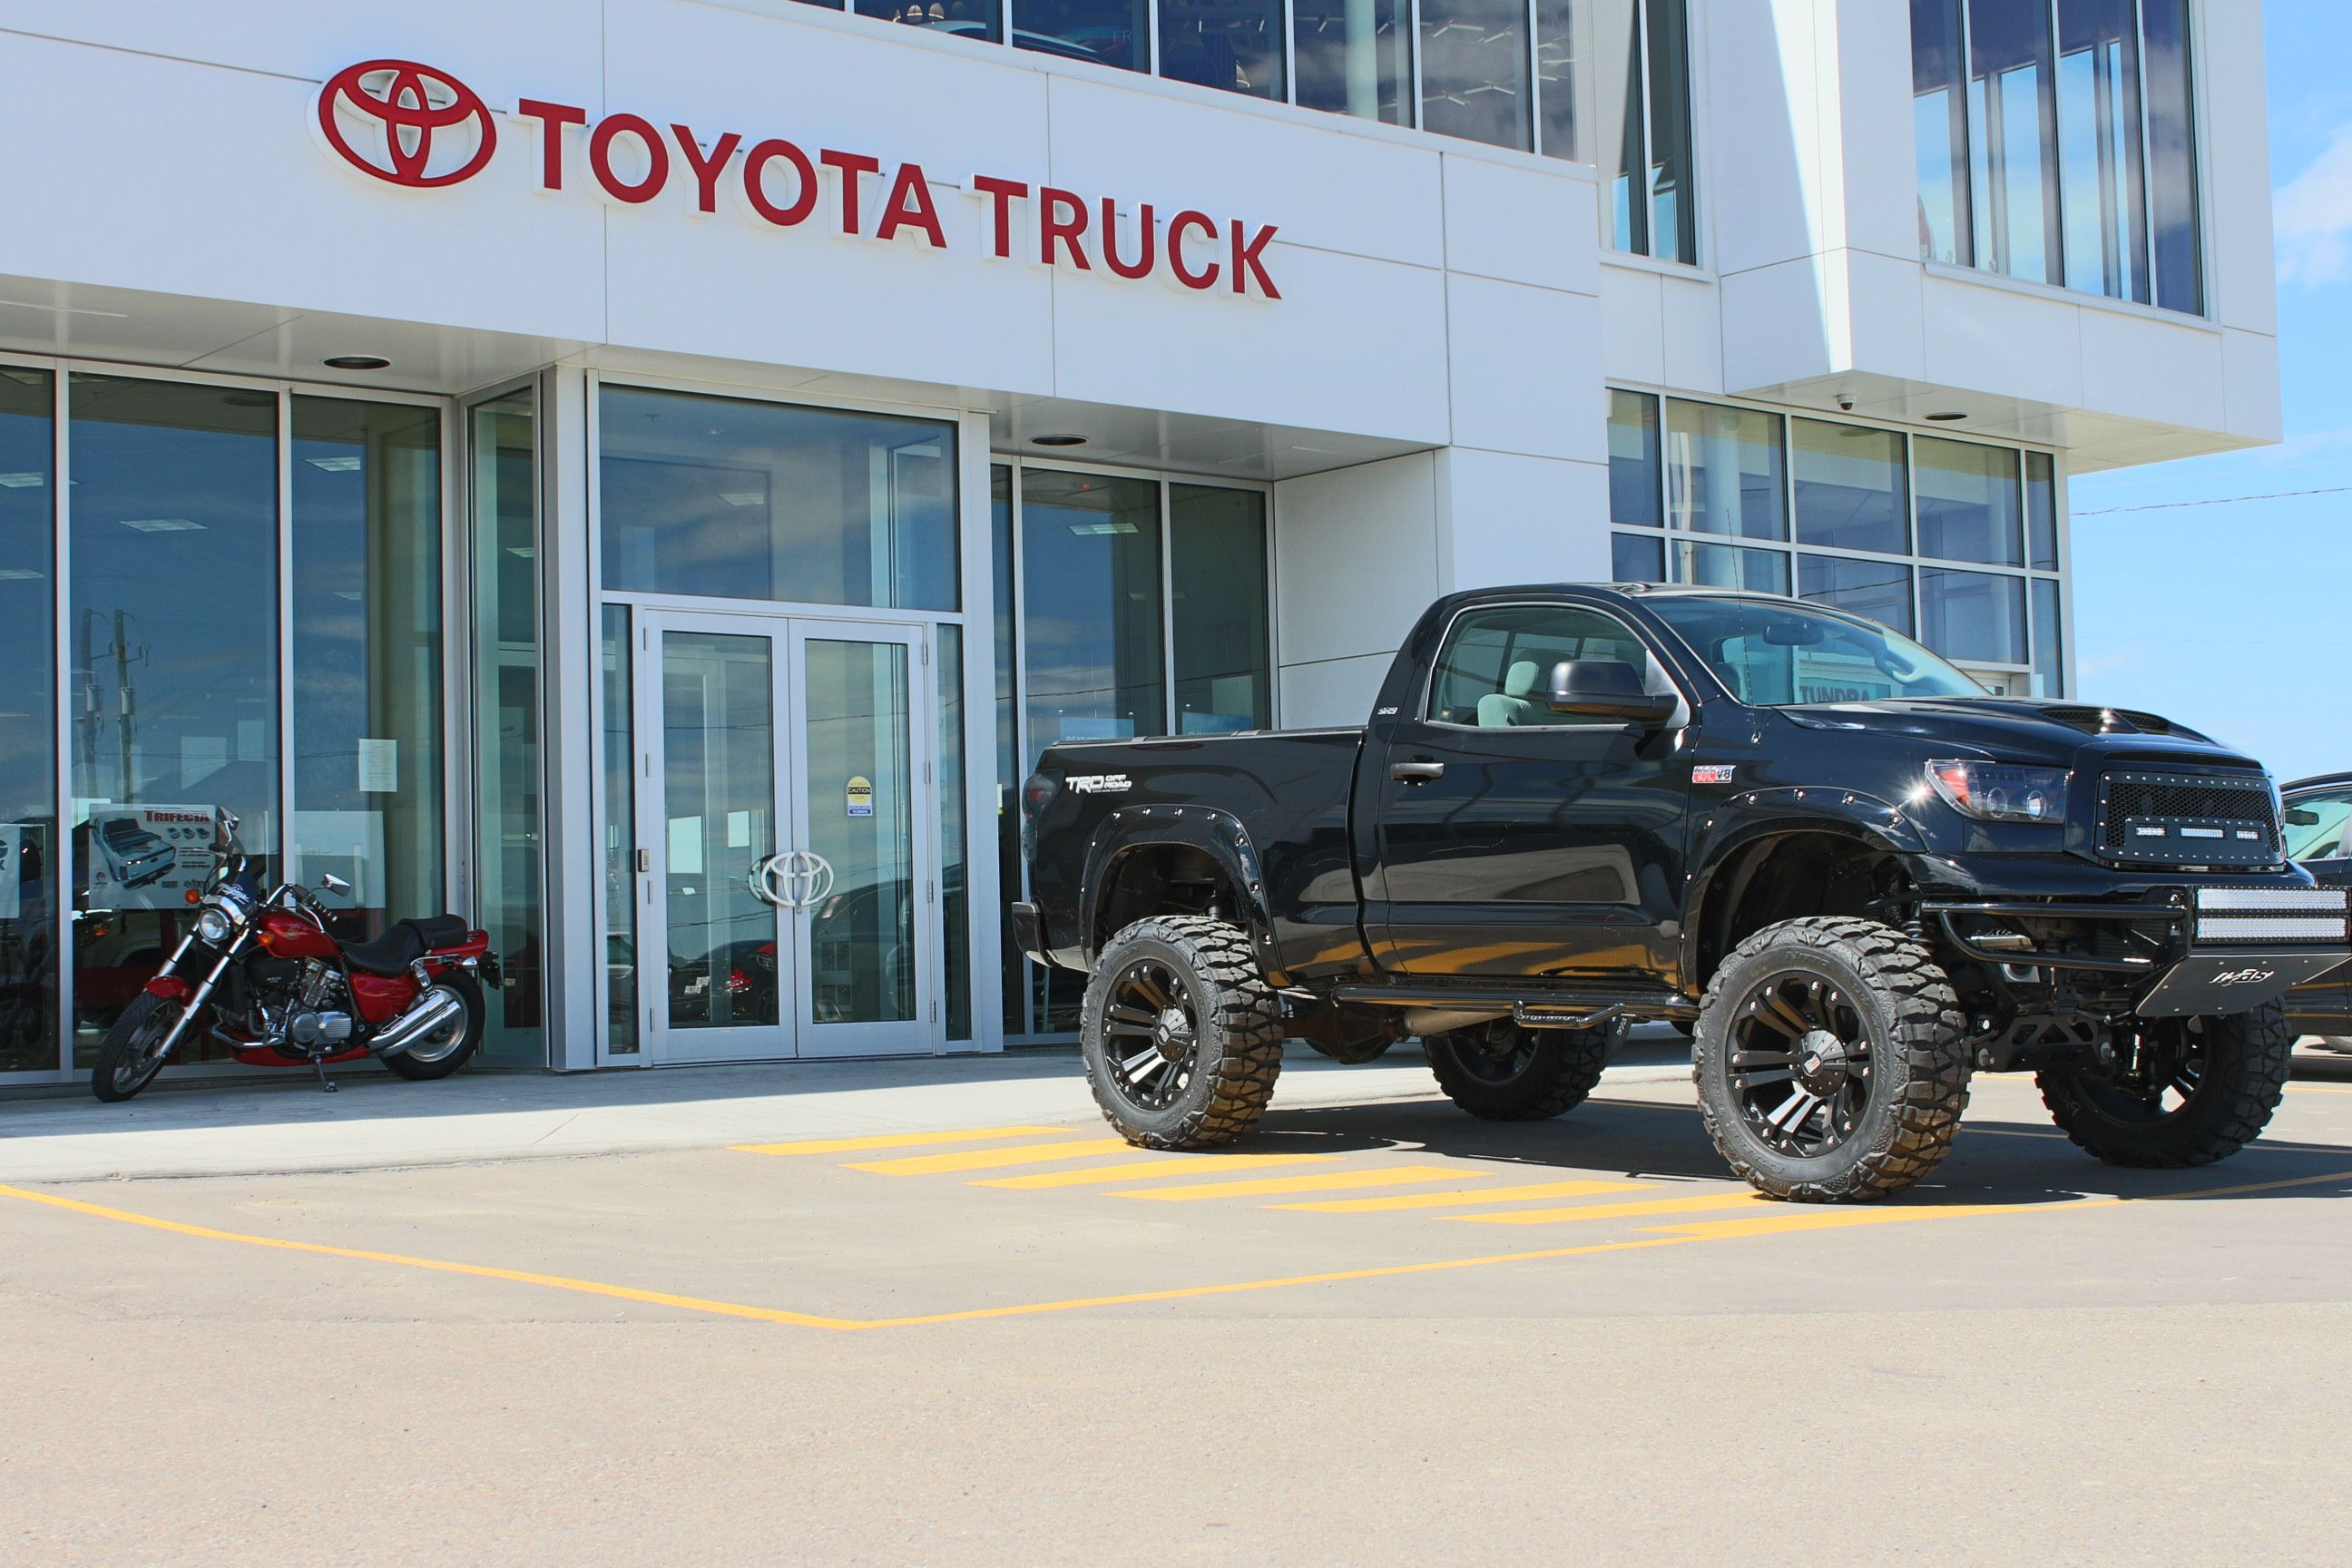 Tire And Wheel Package With A 7 Lift On This Toyota Tundra Visit Us In North Calgary For More Toyota Trucks Parts And Acc Toyota Trucks Trucks Toyota Tundra